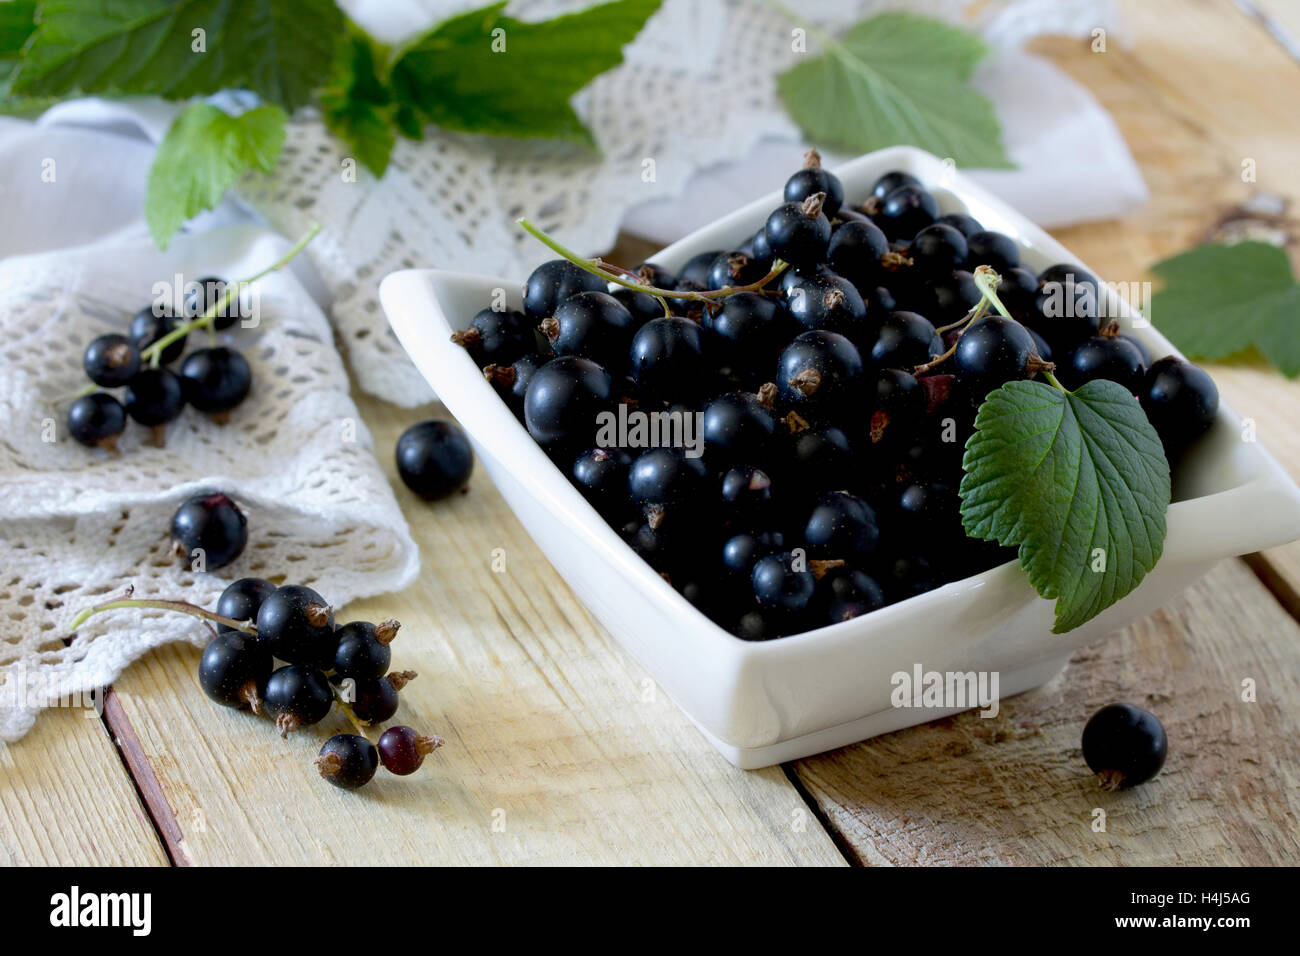 Ripe berries of a black currant in a bowl on a wooden table, selective focus. - Stock Image